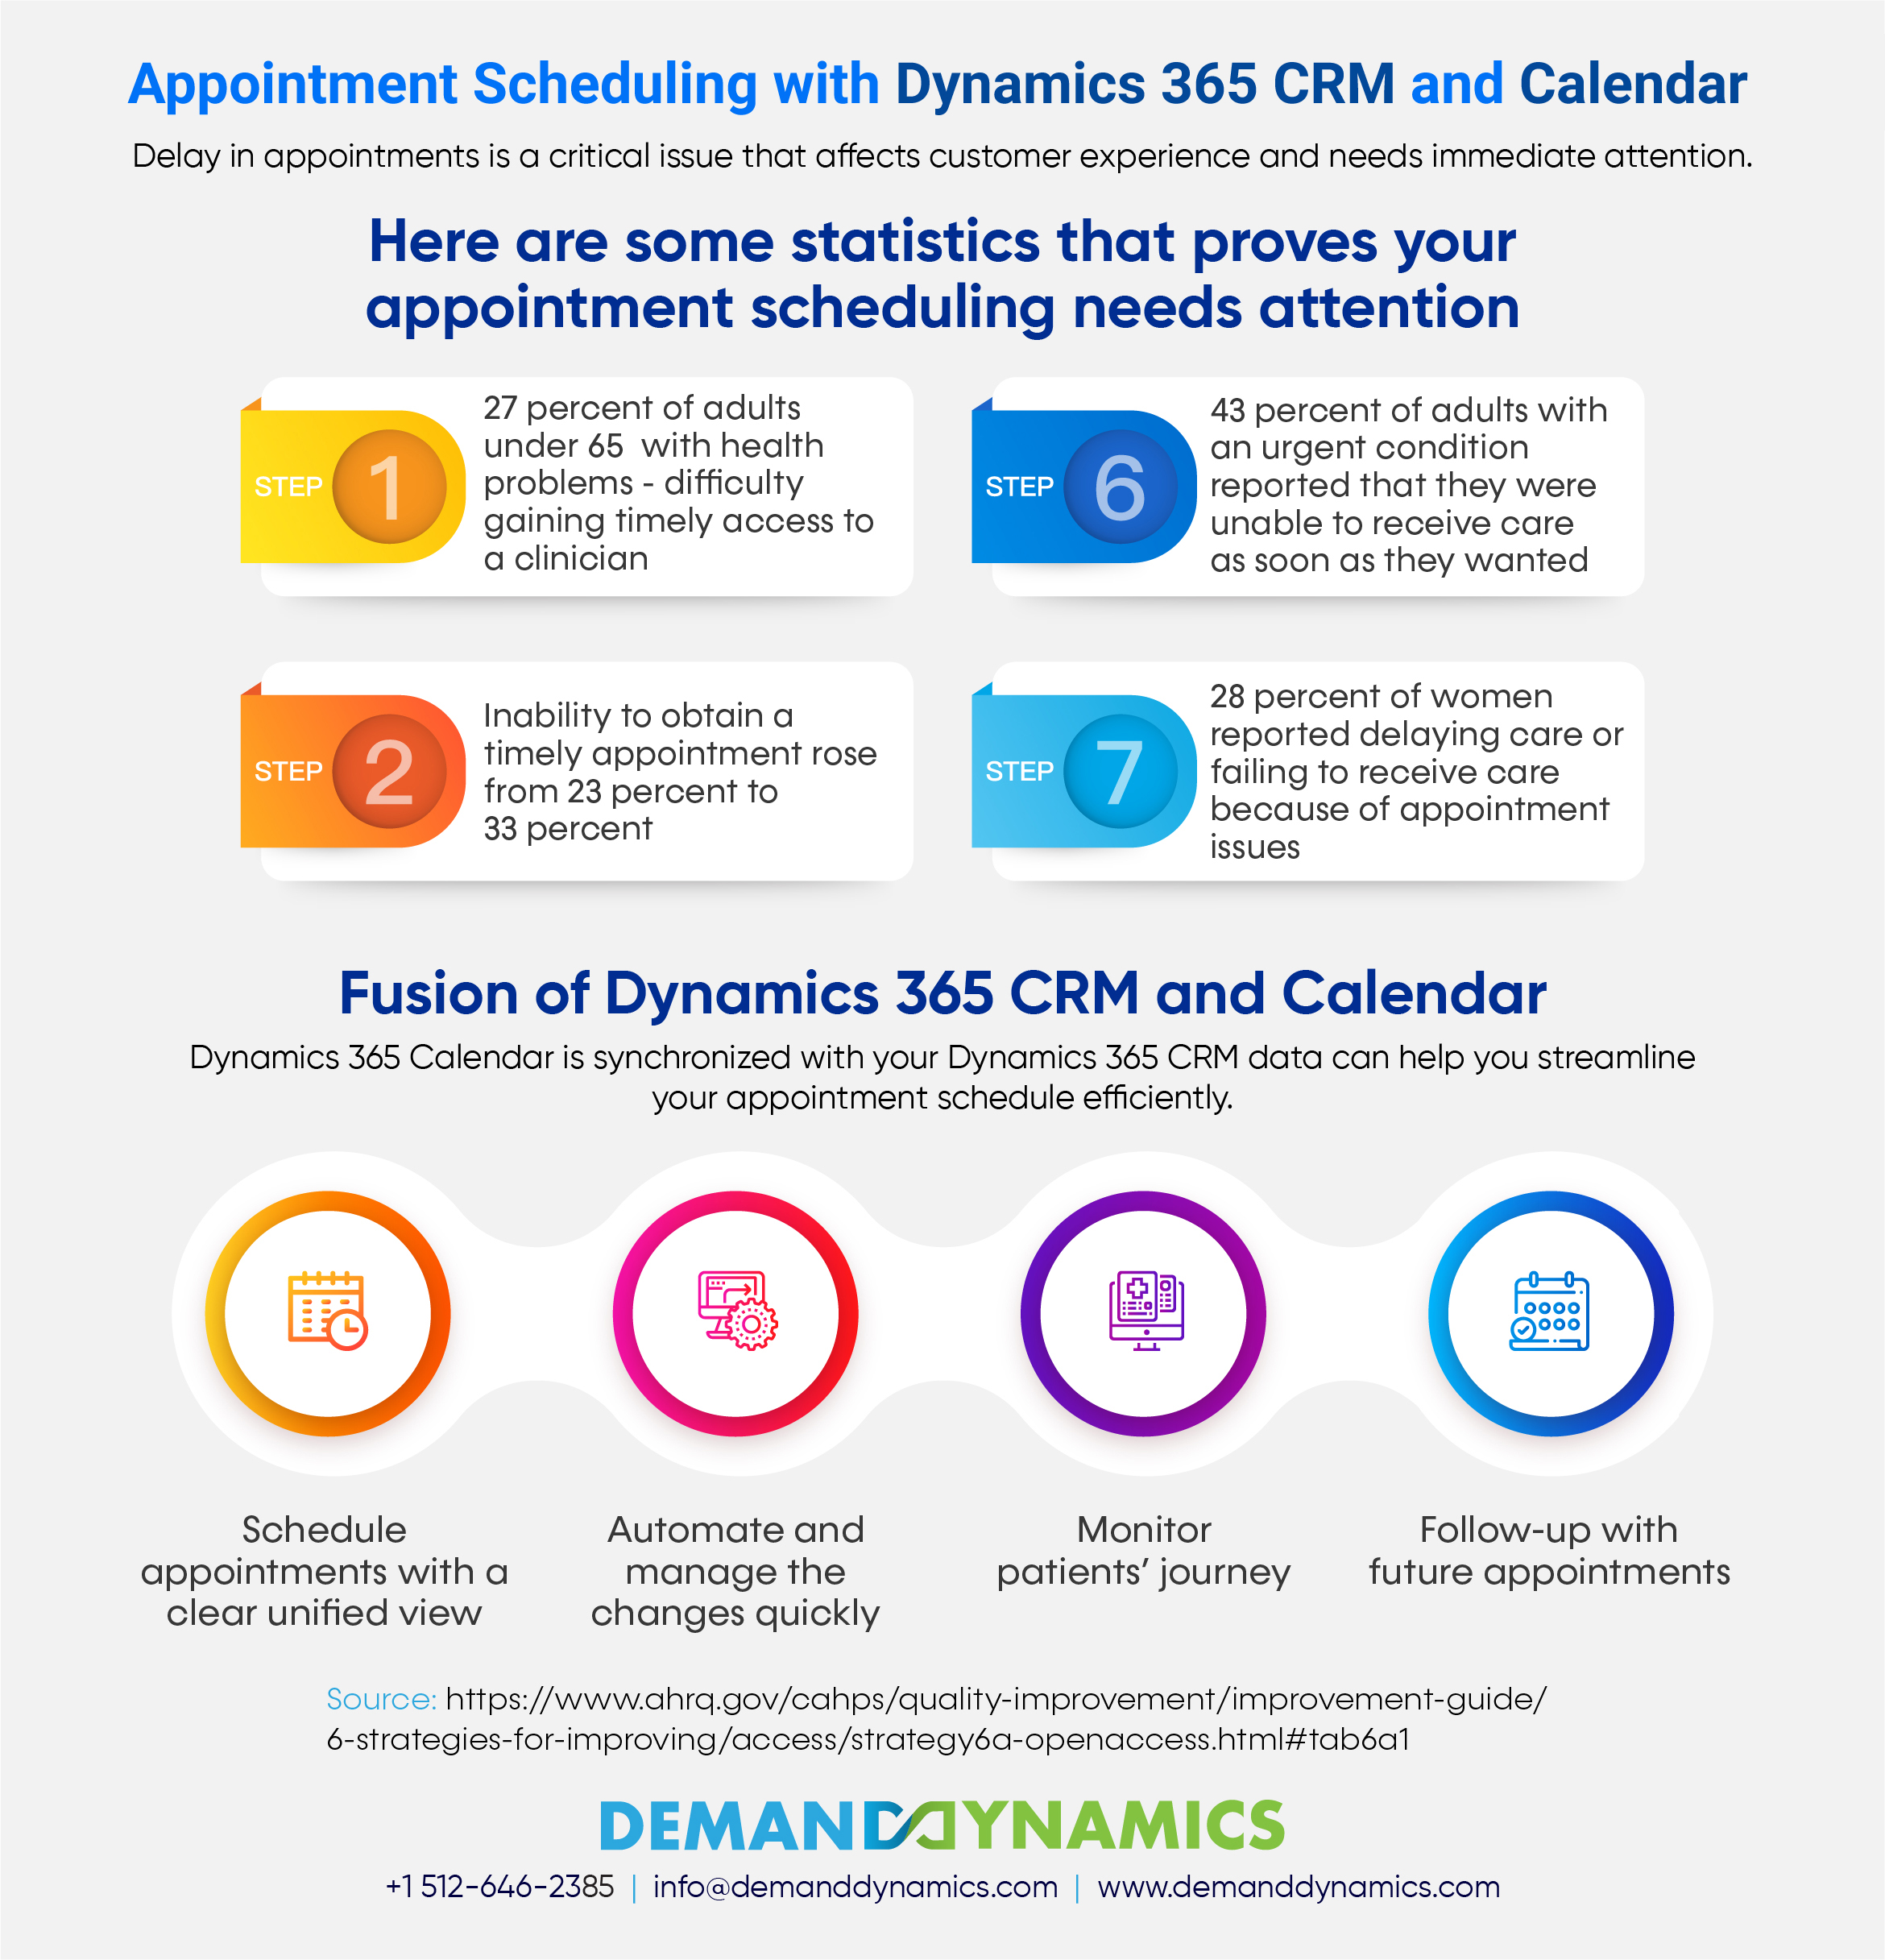 Dynamics 365 CRM in Healthcare